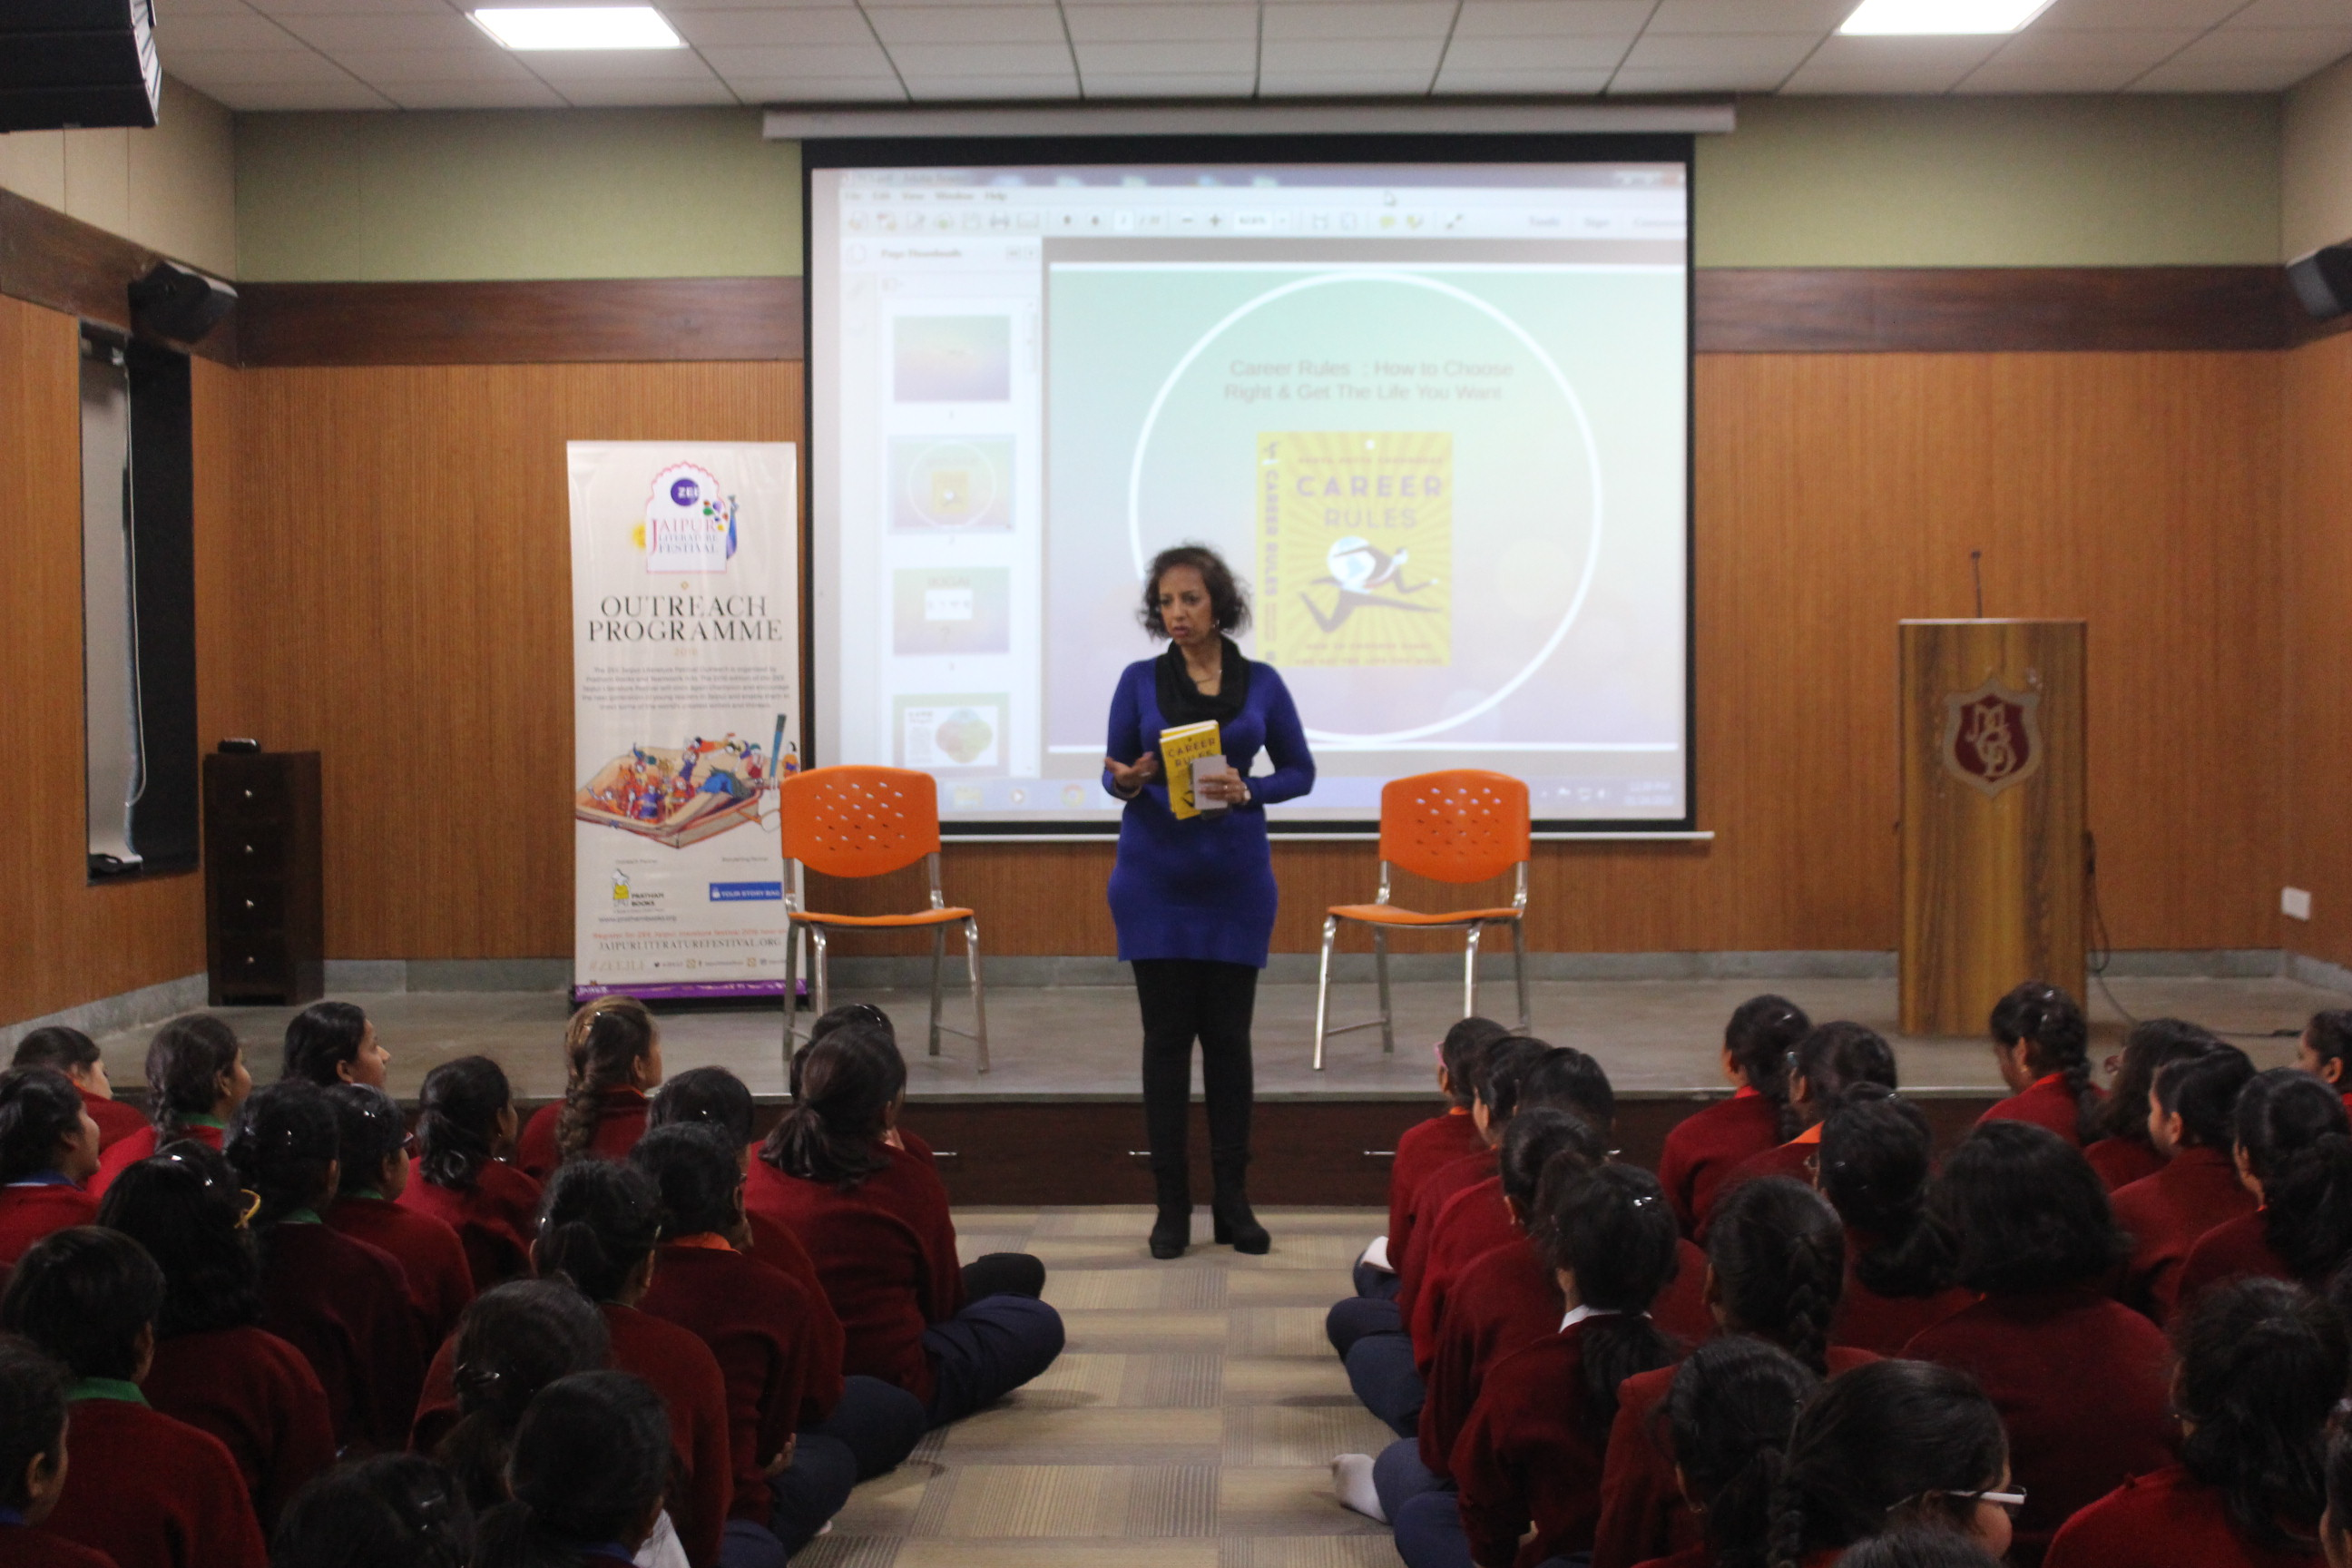 JLF Outreach Programme on 23 January 2018: talk by Ms Sonya Dutta Choudhury on Careers